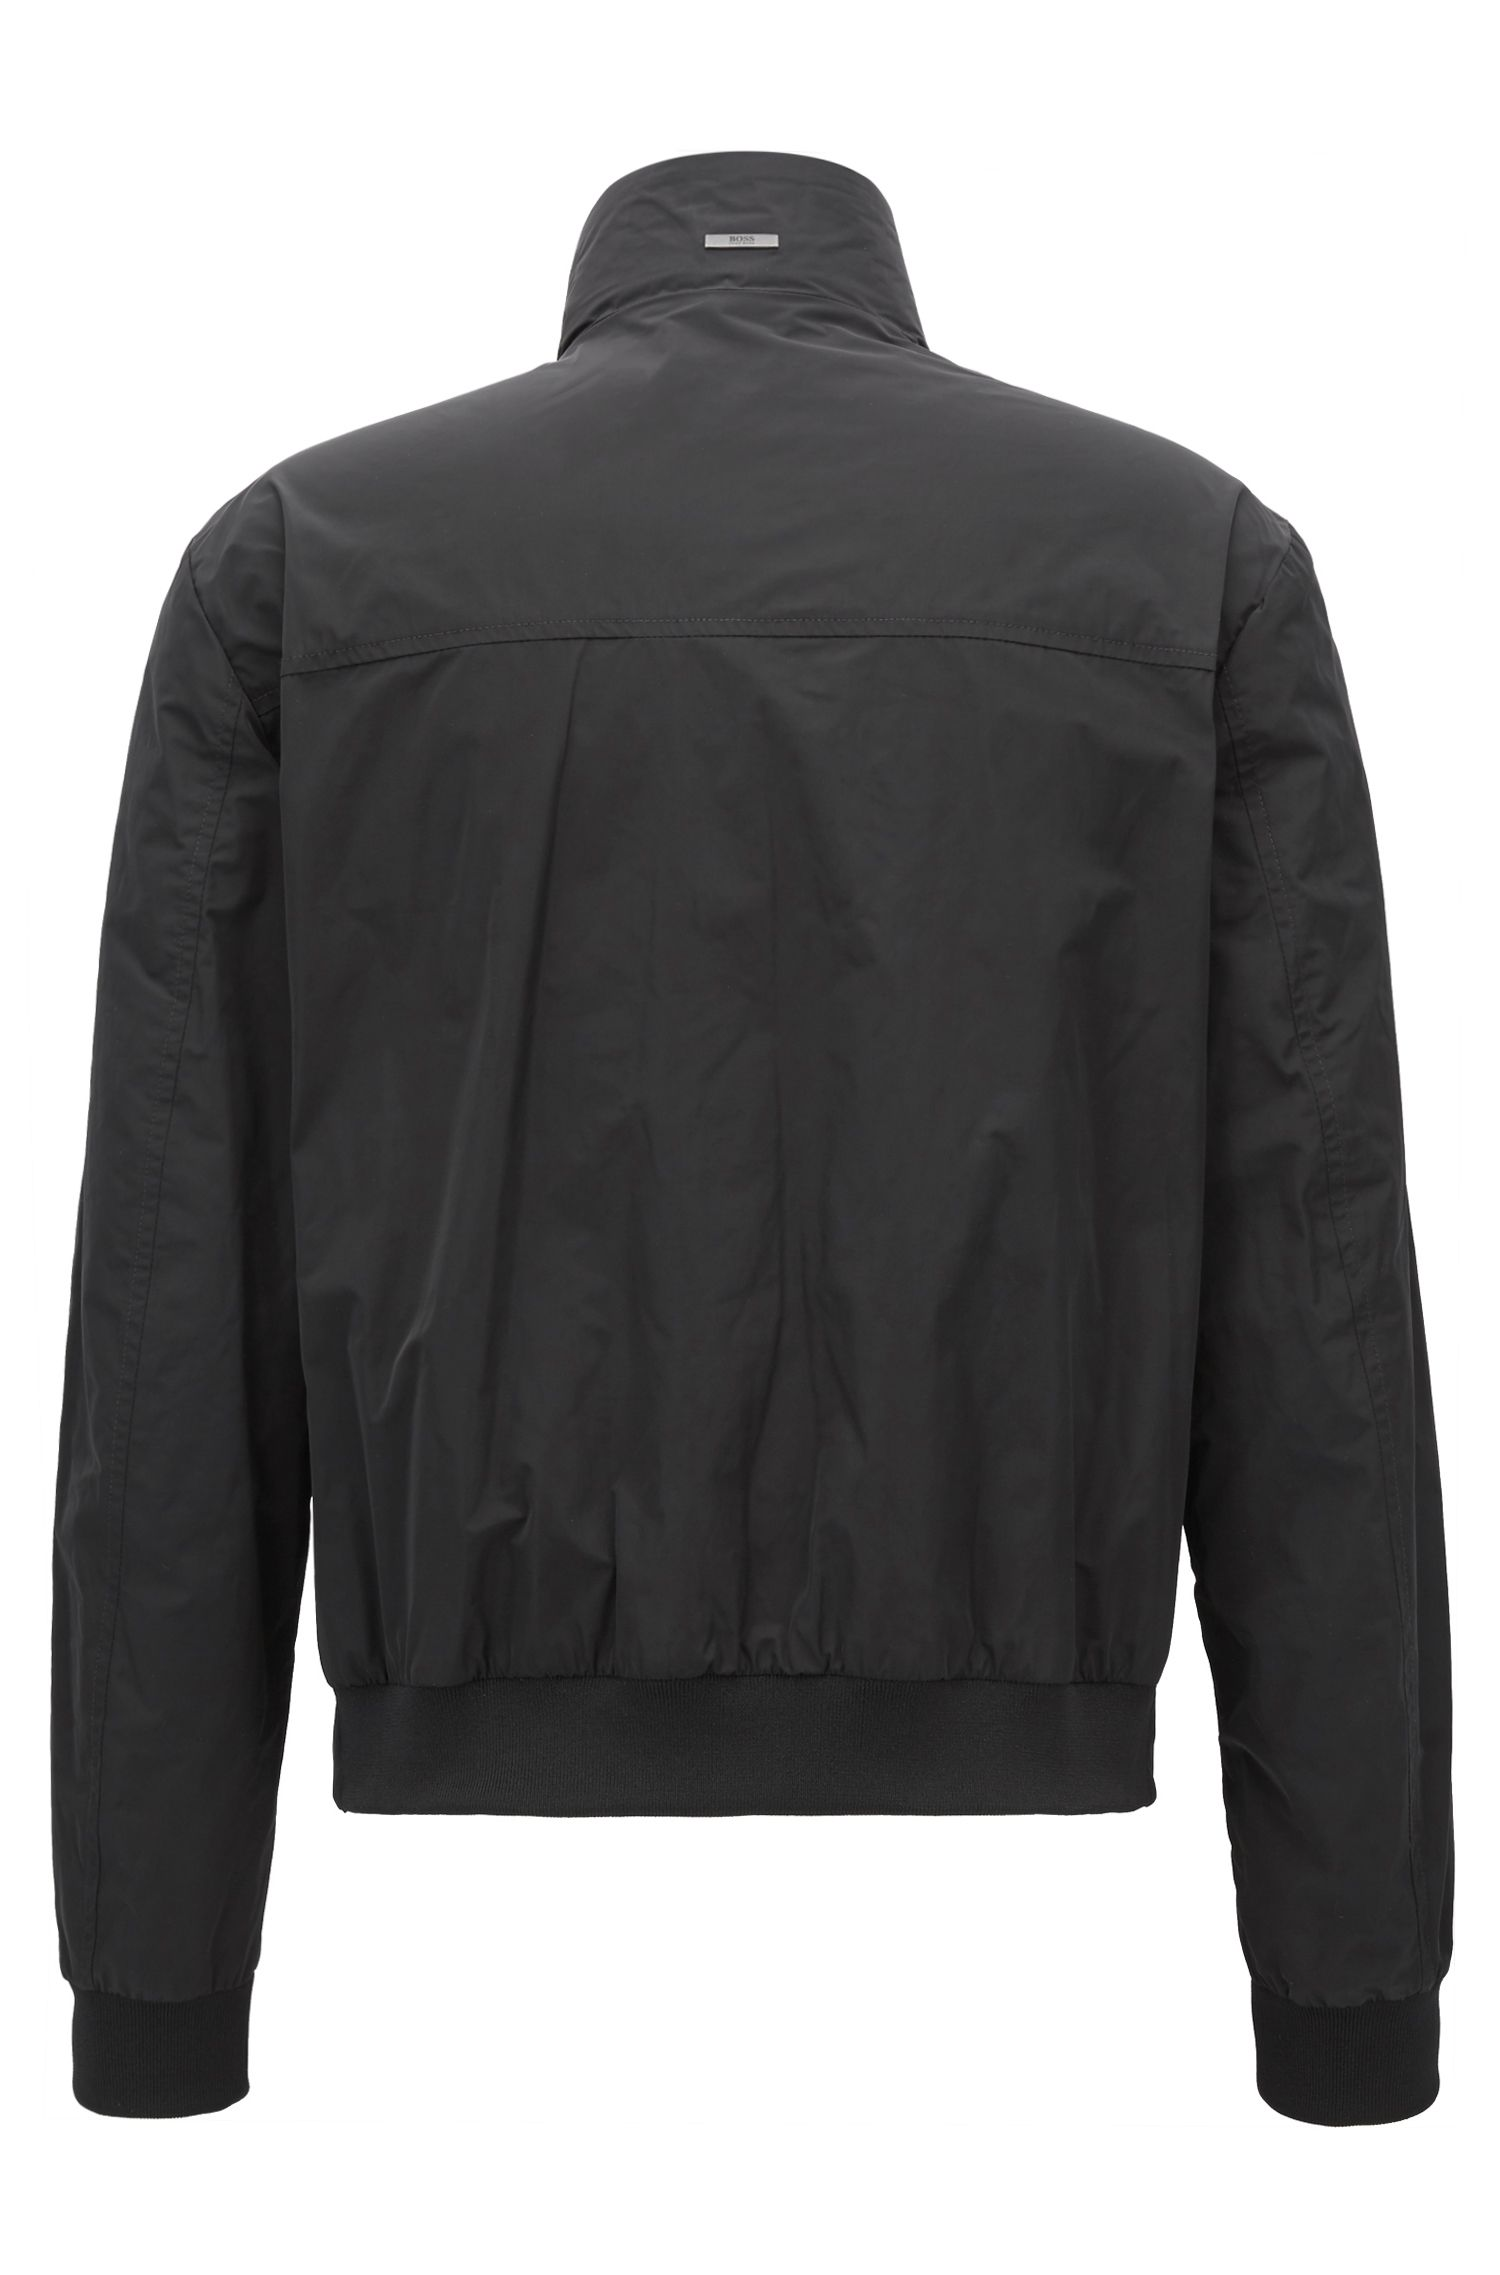 Blouson bomber jacket in water-repellent technical fabric